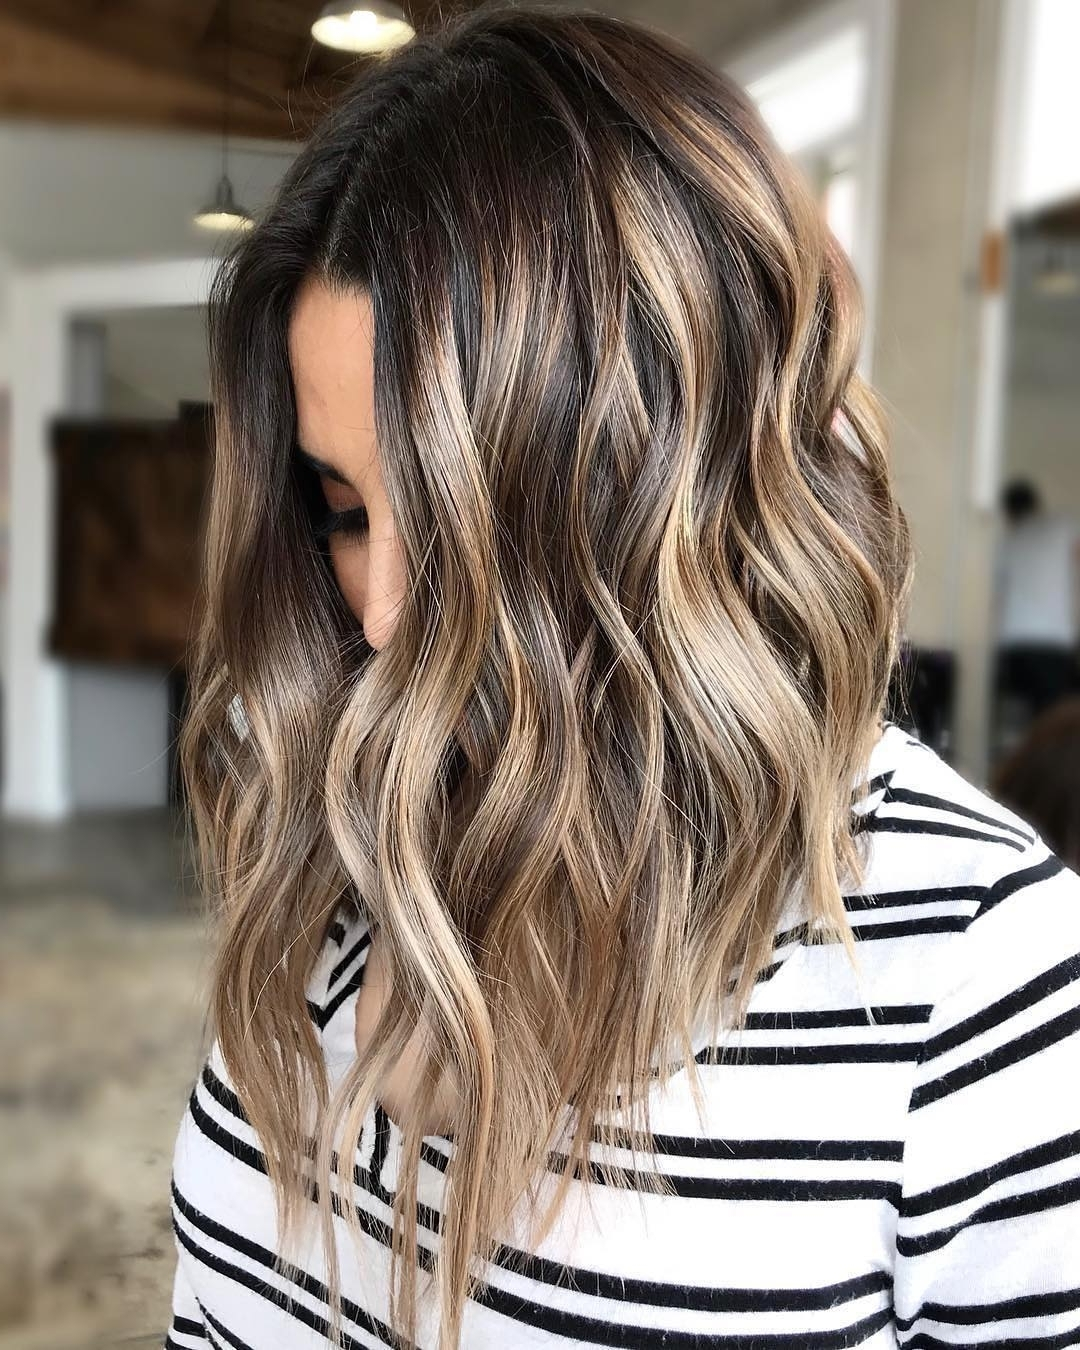 Most Popular Beige Balayage For Light Brown Hair Throughout 10 Balayage Ombre Long Hair Styles From Subtle To Stunning, Long (View 11 of 20)